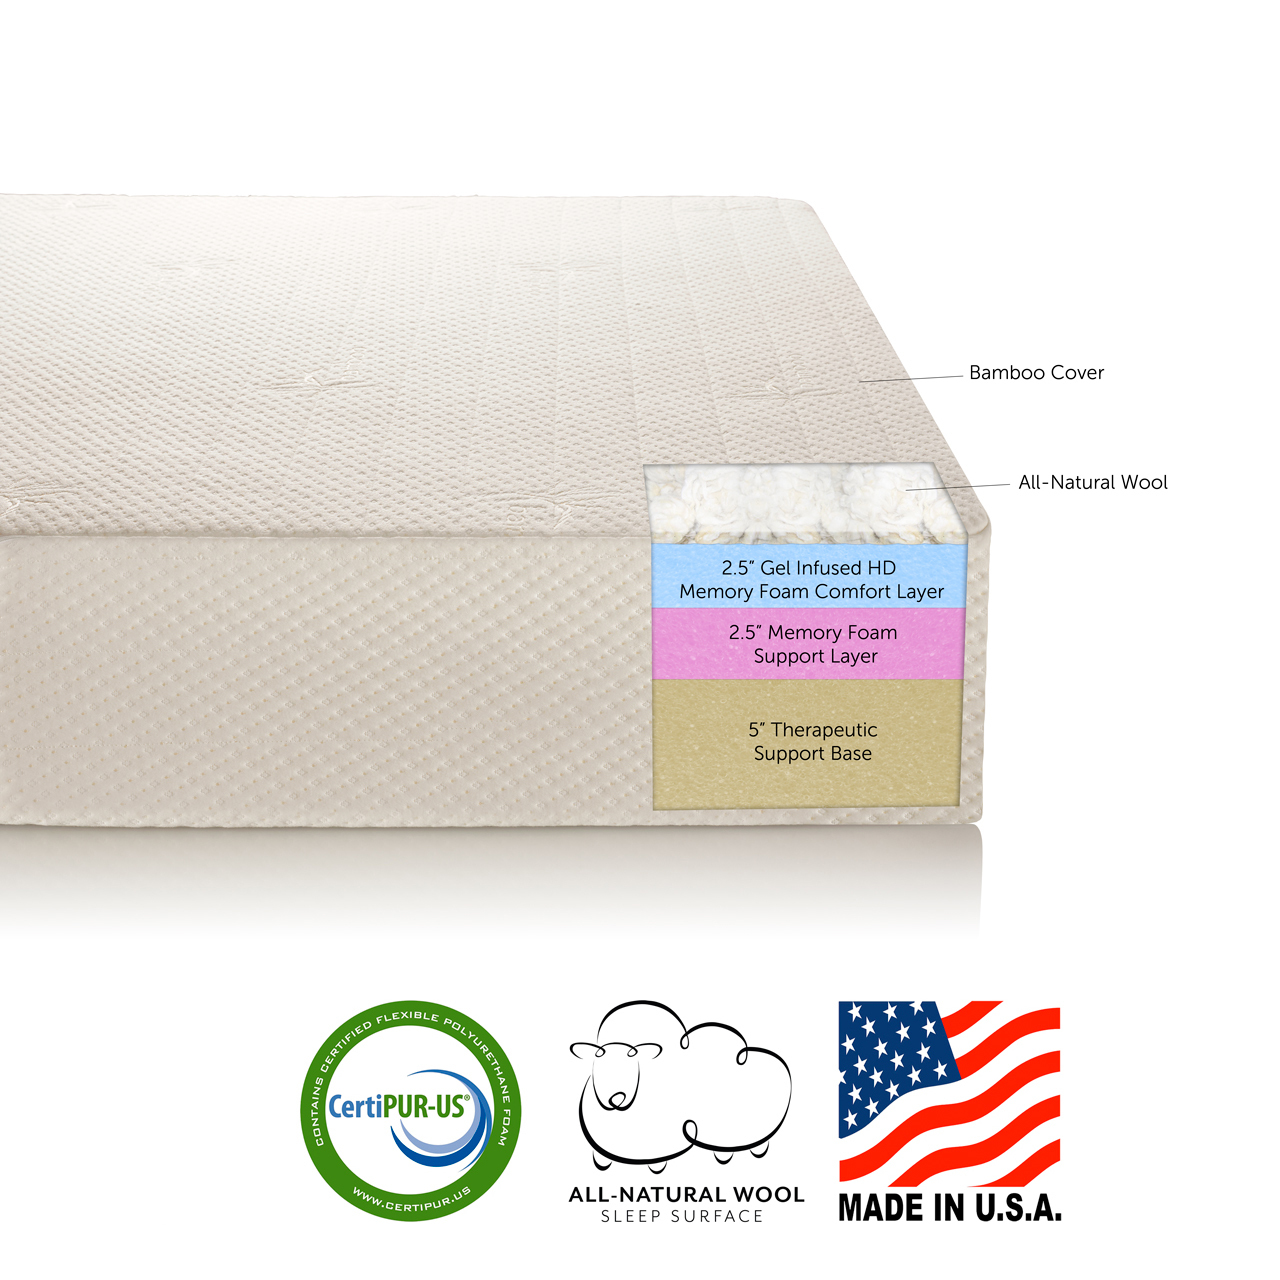 10 inch Gel Memory Foam Mattress with Bamboo Cover Made